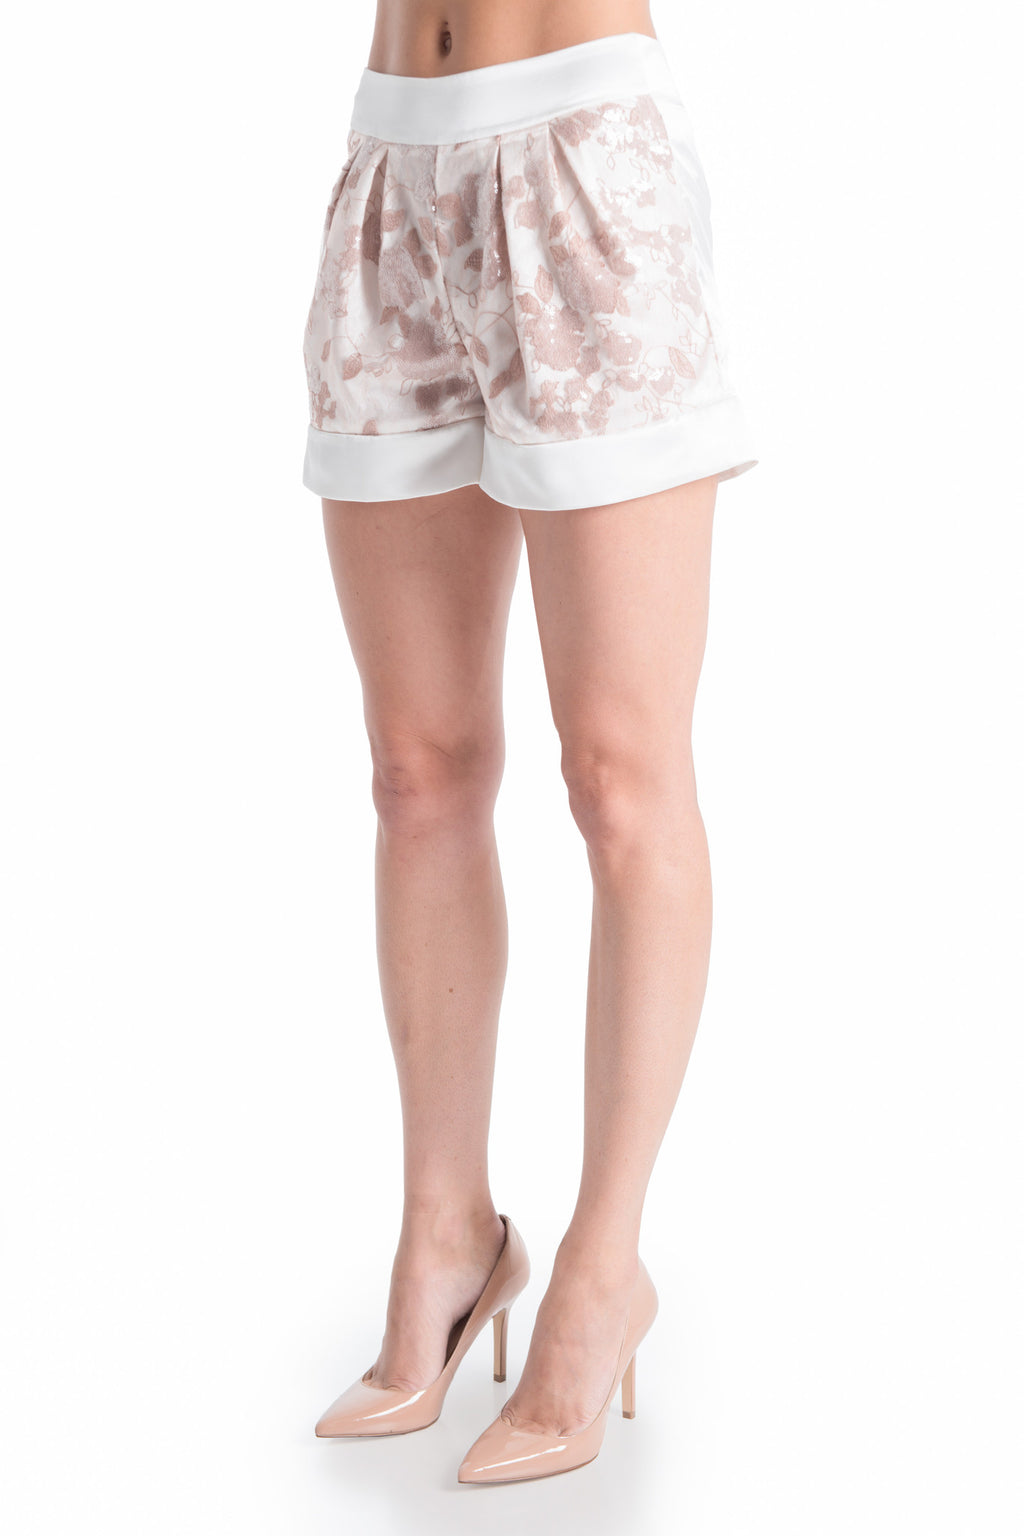 OLIVIA Lace Satin Shorts - ROMANTIC DUSTY | SAMPLE | HAUS OF SONG